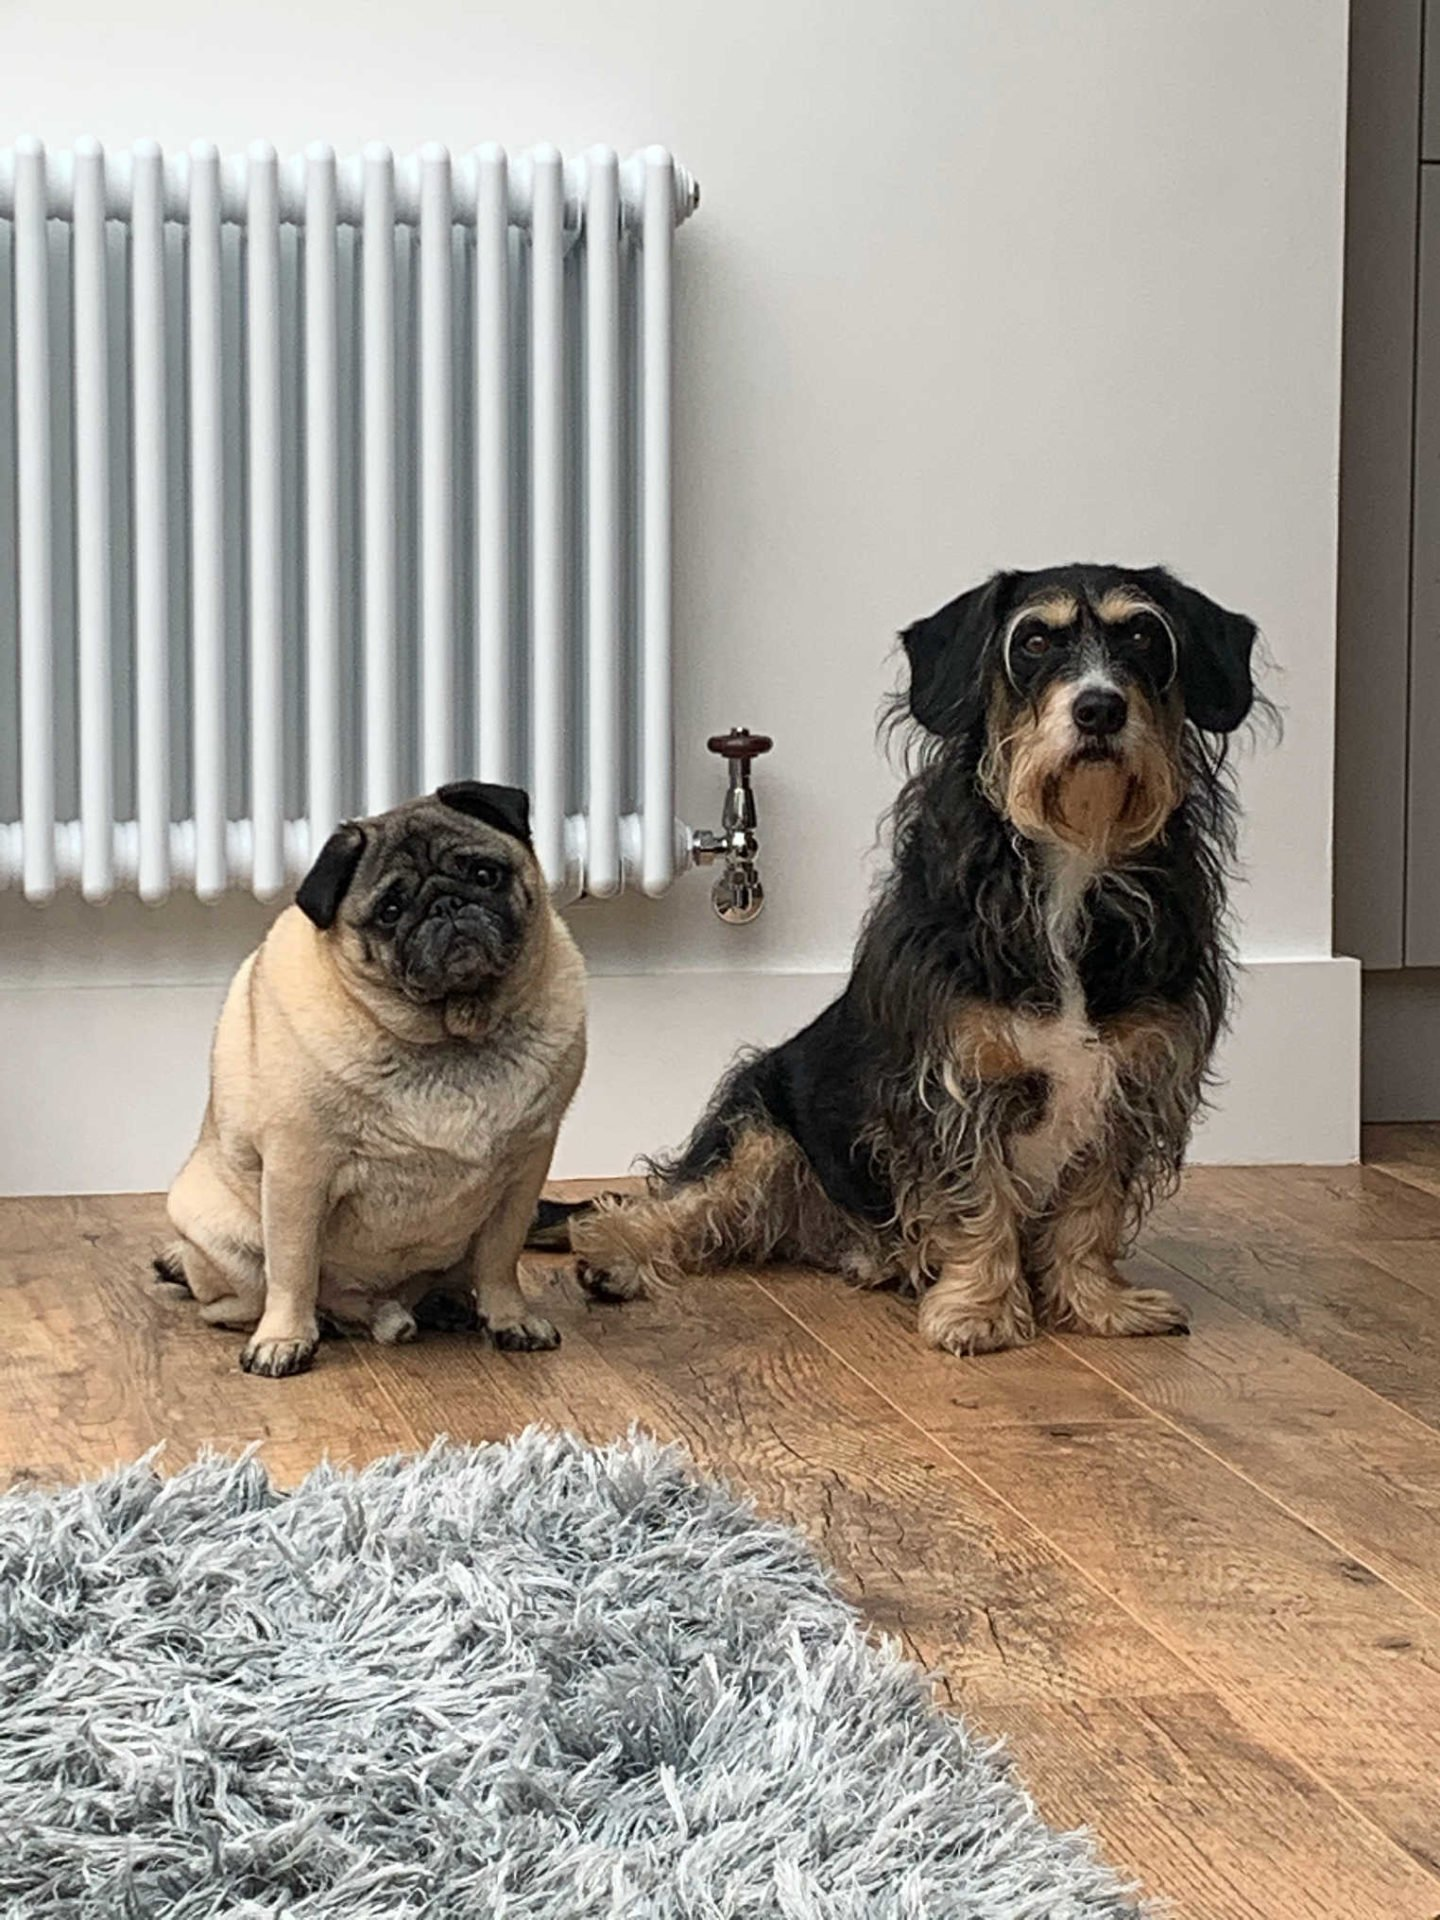 Alf and Toby